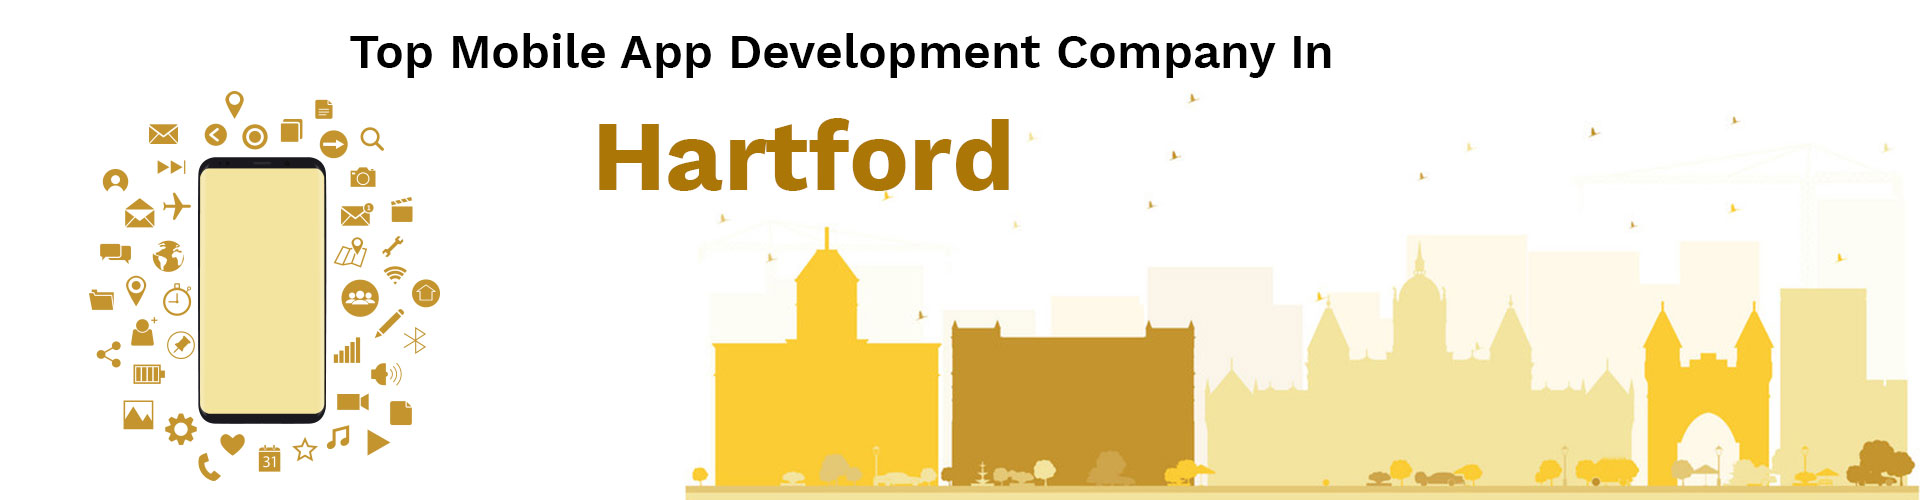 mobile app development company hartford